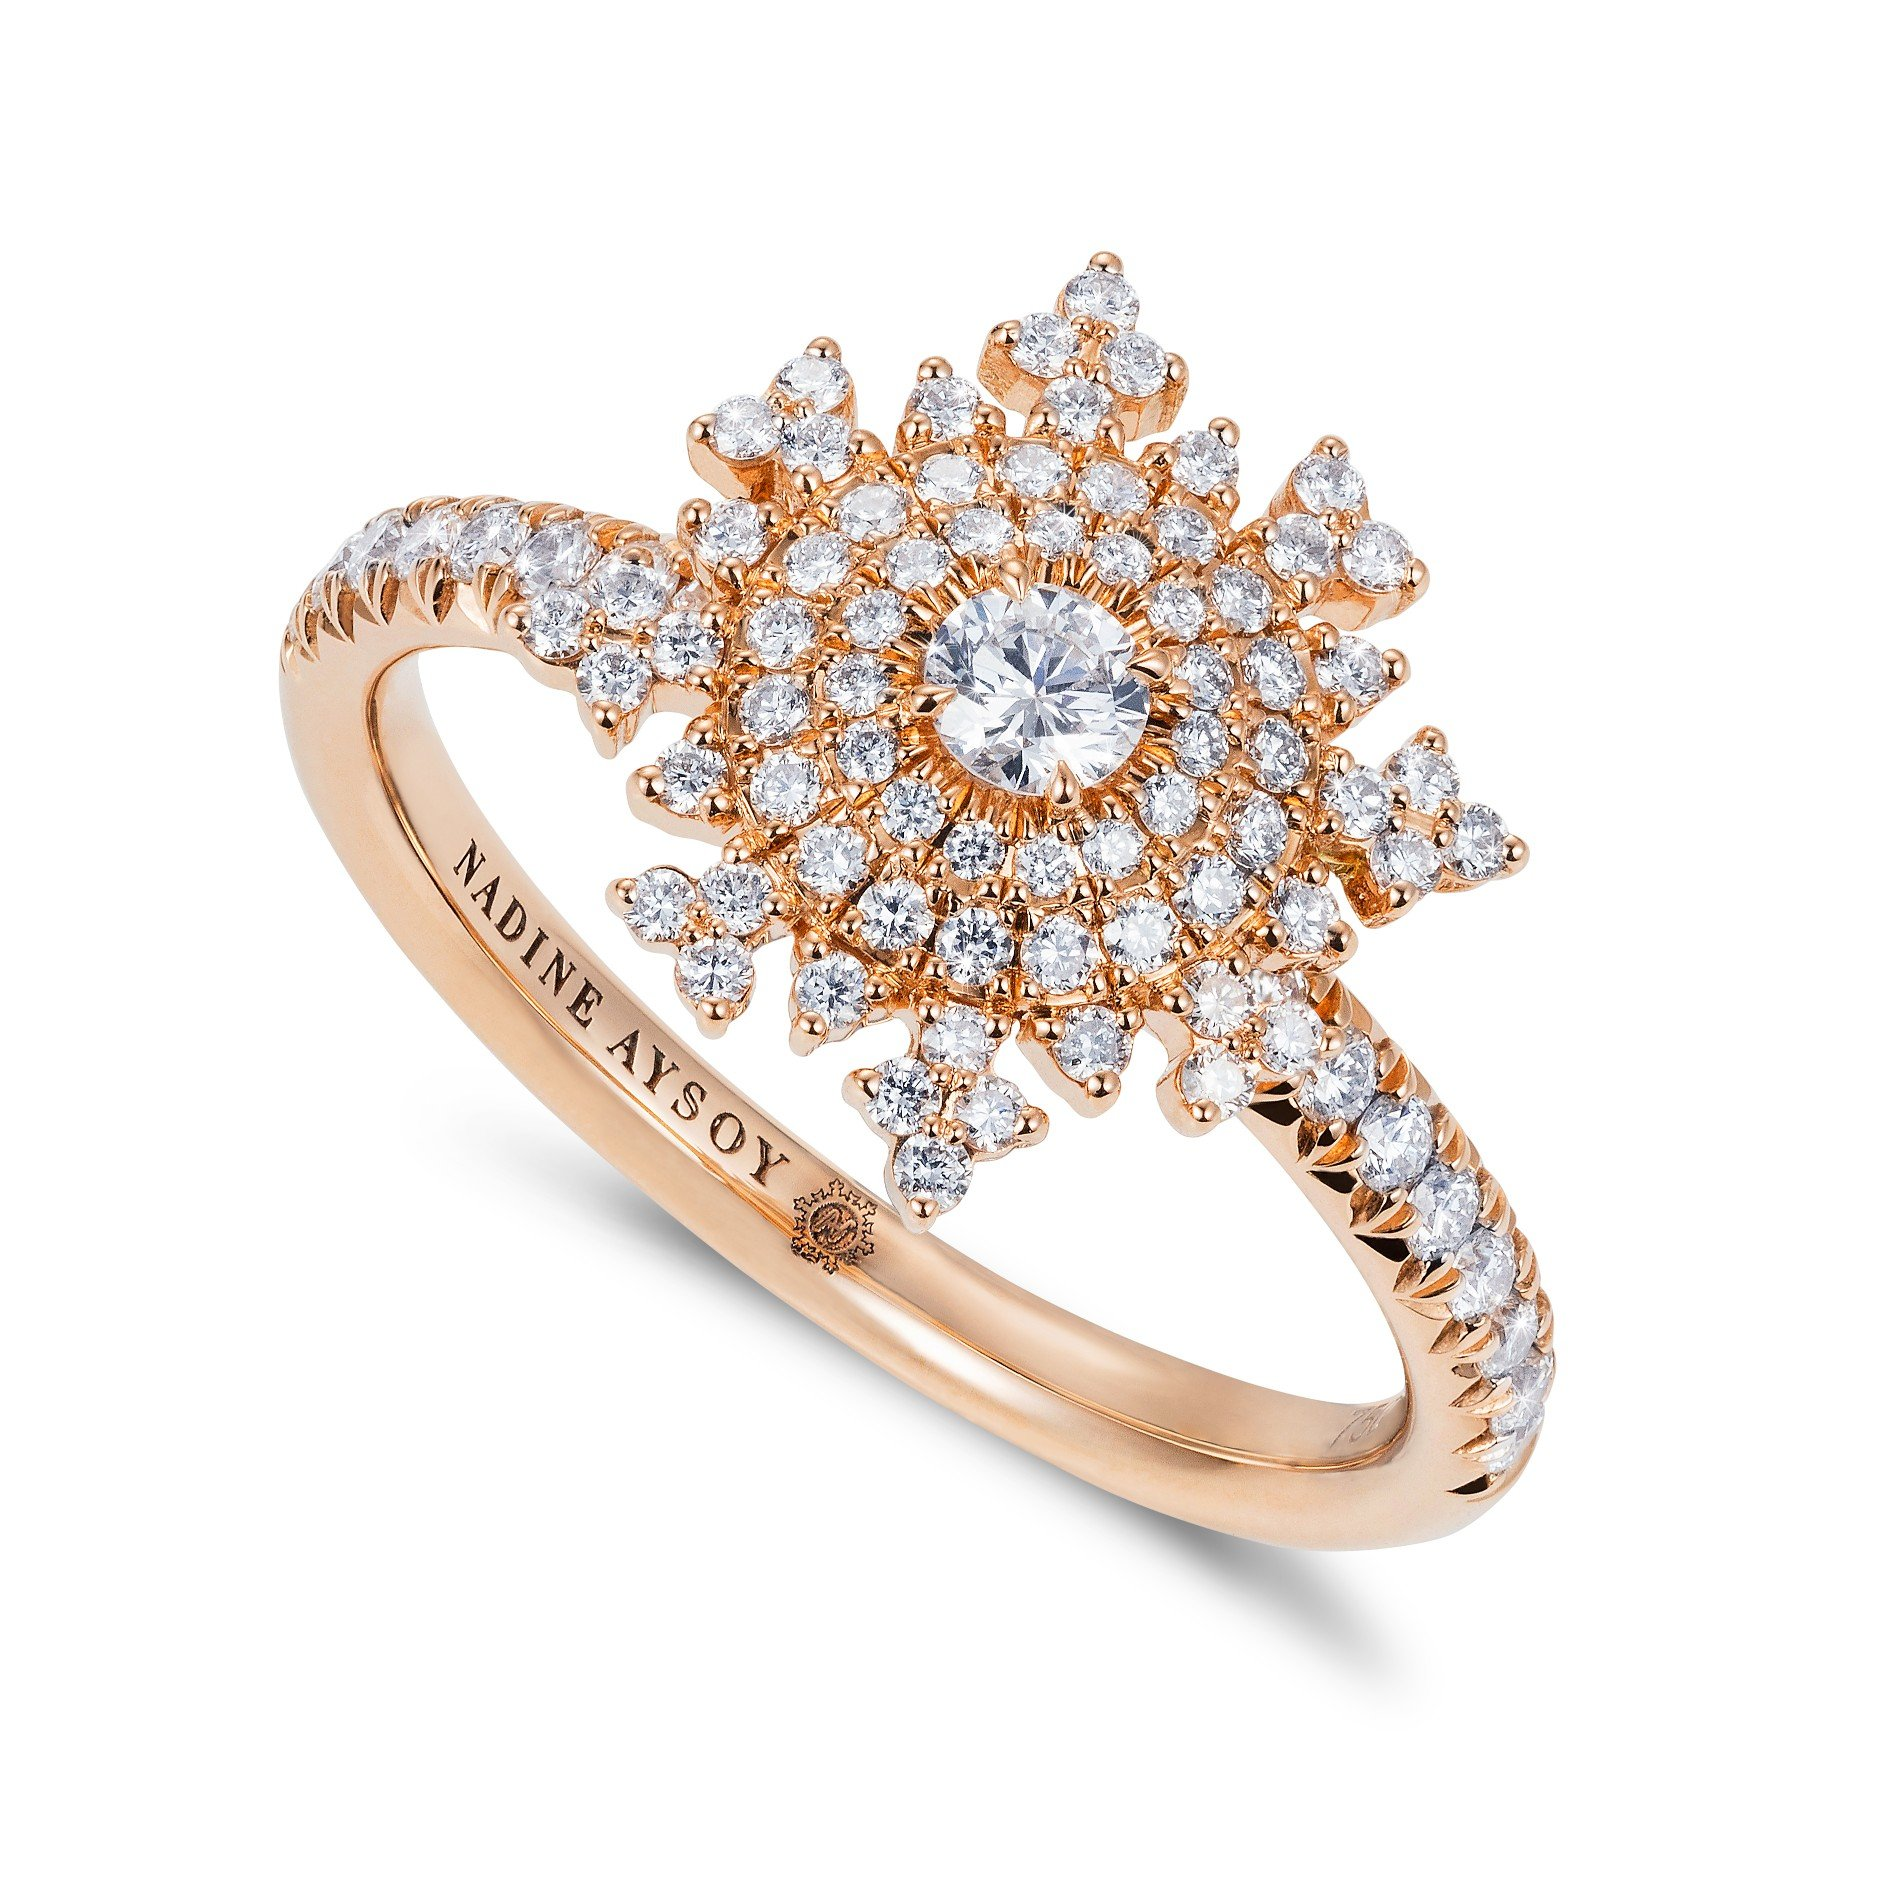 Petite Tsarina Rose Ring by Nadine Aysoy on curated-crowd.com